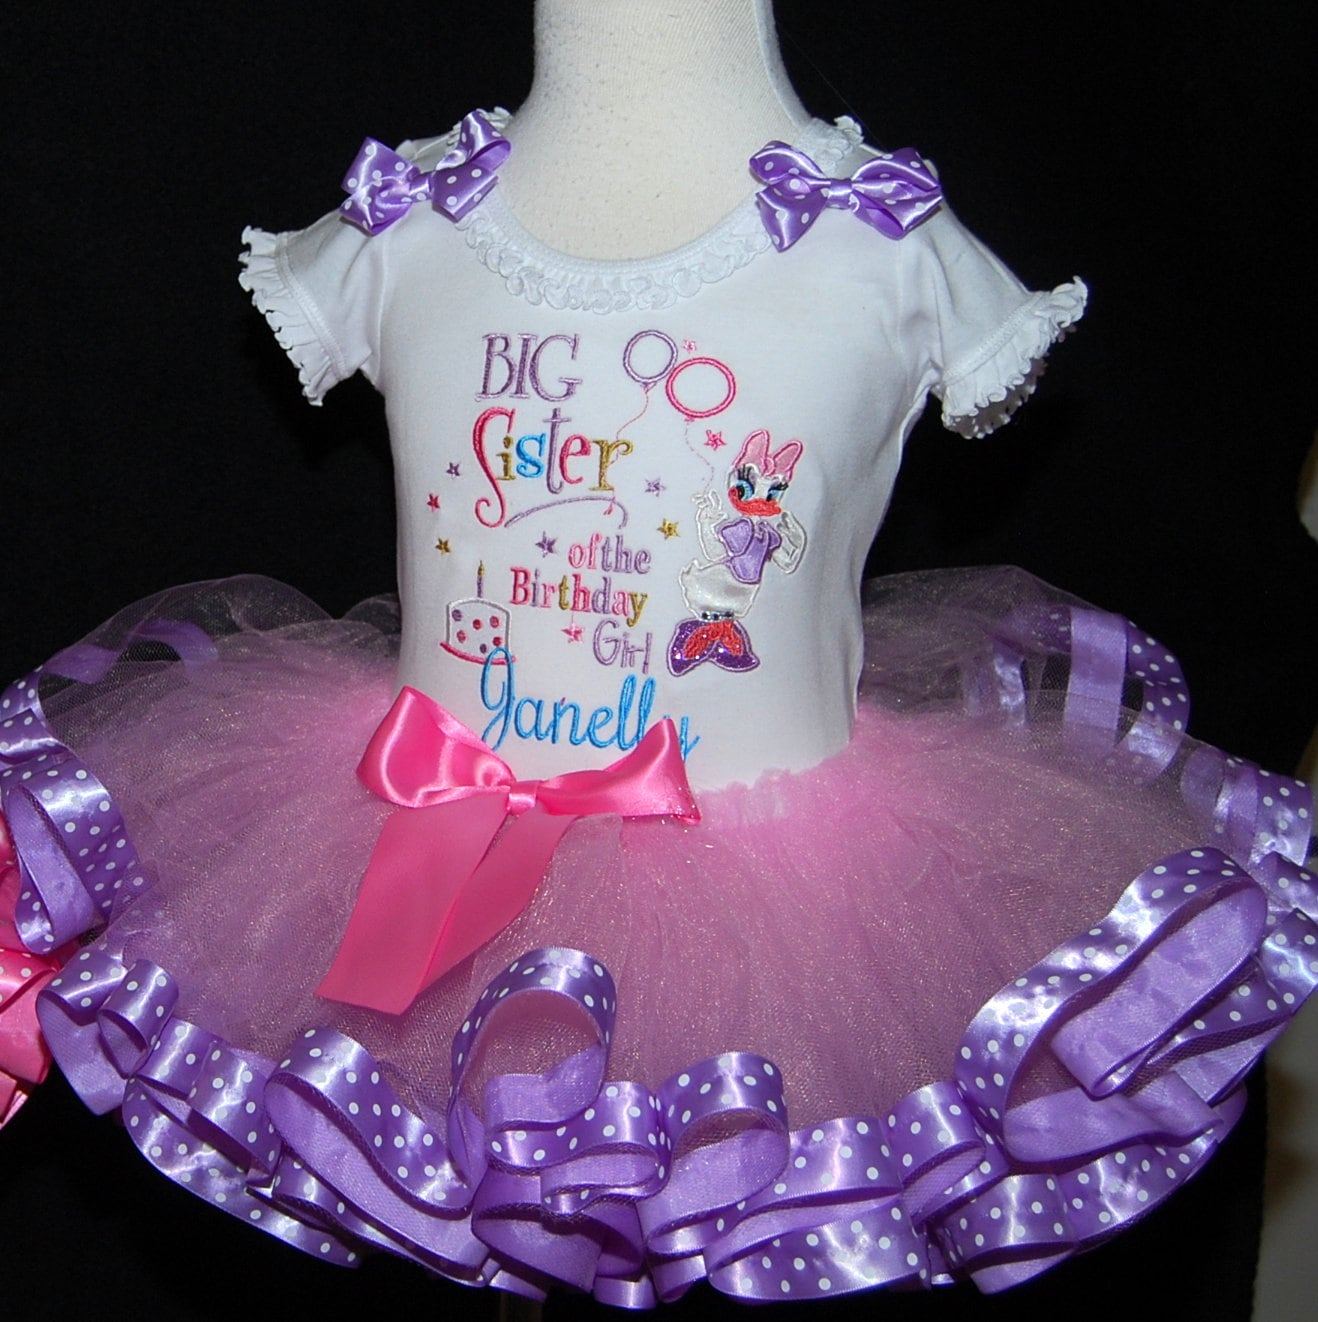 Big Sister of the birthday girl tutu outfit. sibling shirt personalized with matching tutu. This can be custom designed to match any outfit